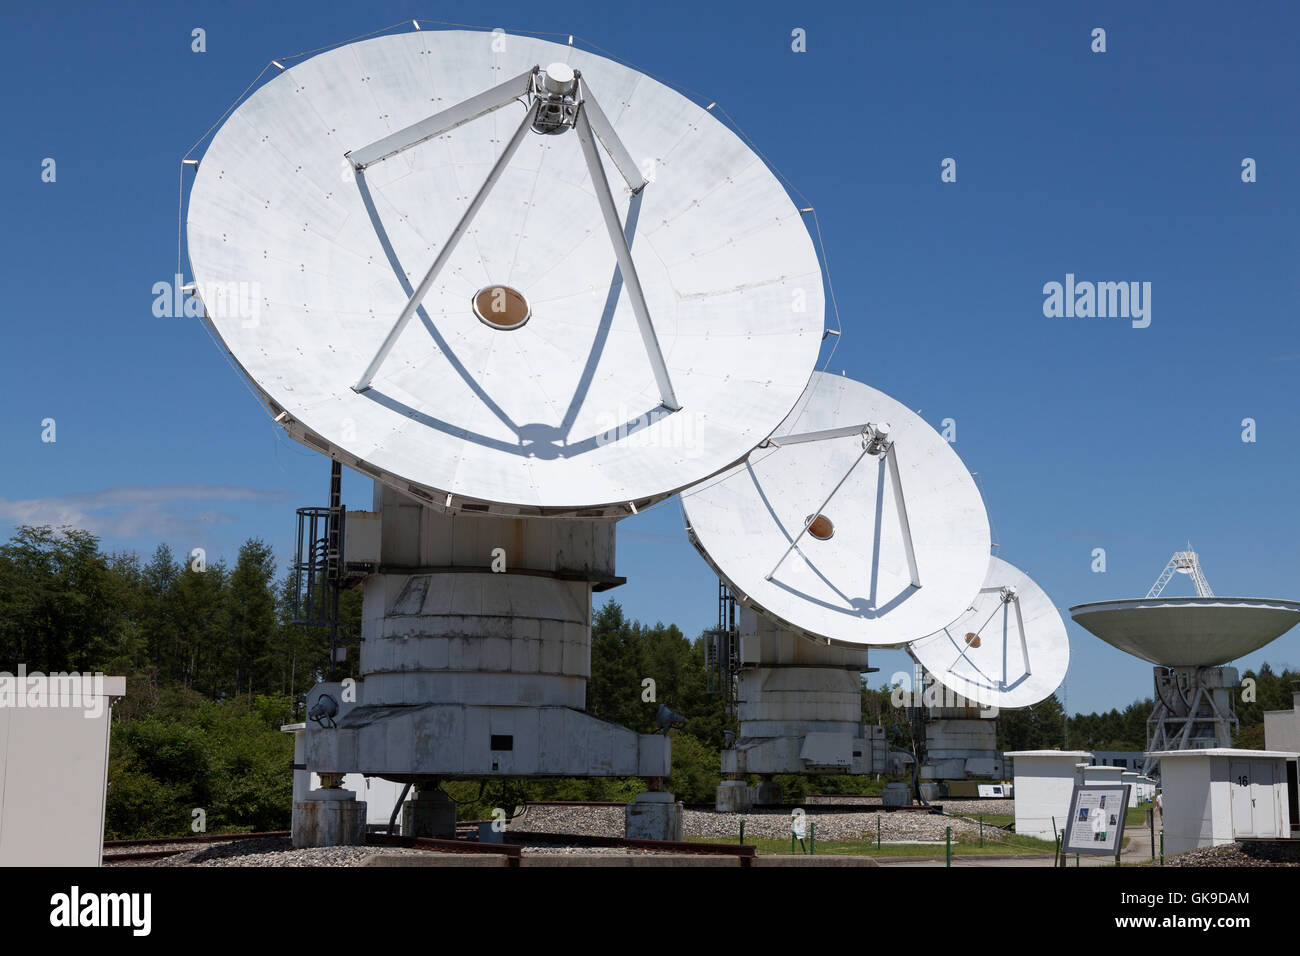 Nobeyama Radio Observatory (NRO) near Minamimaki, Nagano, Japan Wednesday August 17th 2016. - Stock Image